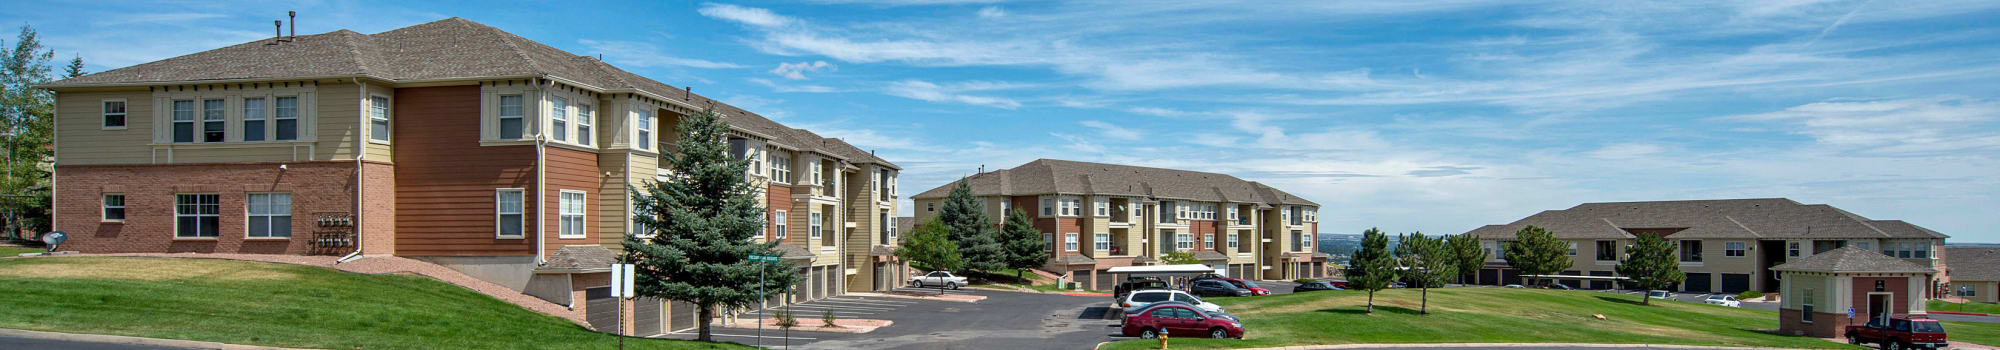 Learn more about our apartment homes for rent at Retreat at Cheyenne Mountain Apartments in Colorado Springs